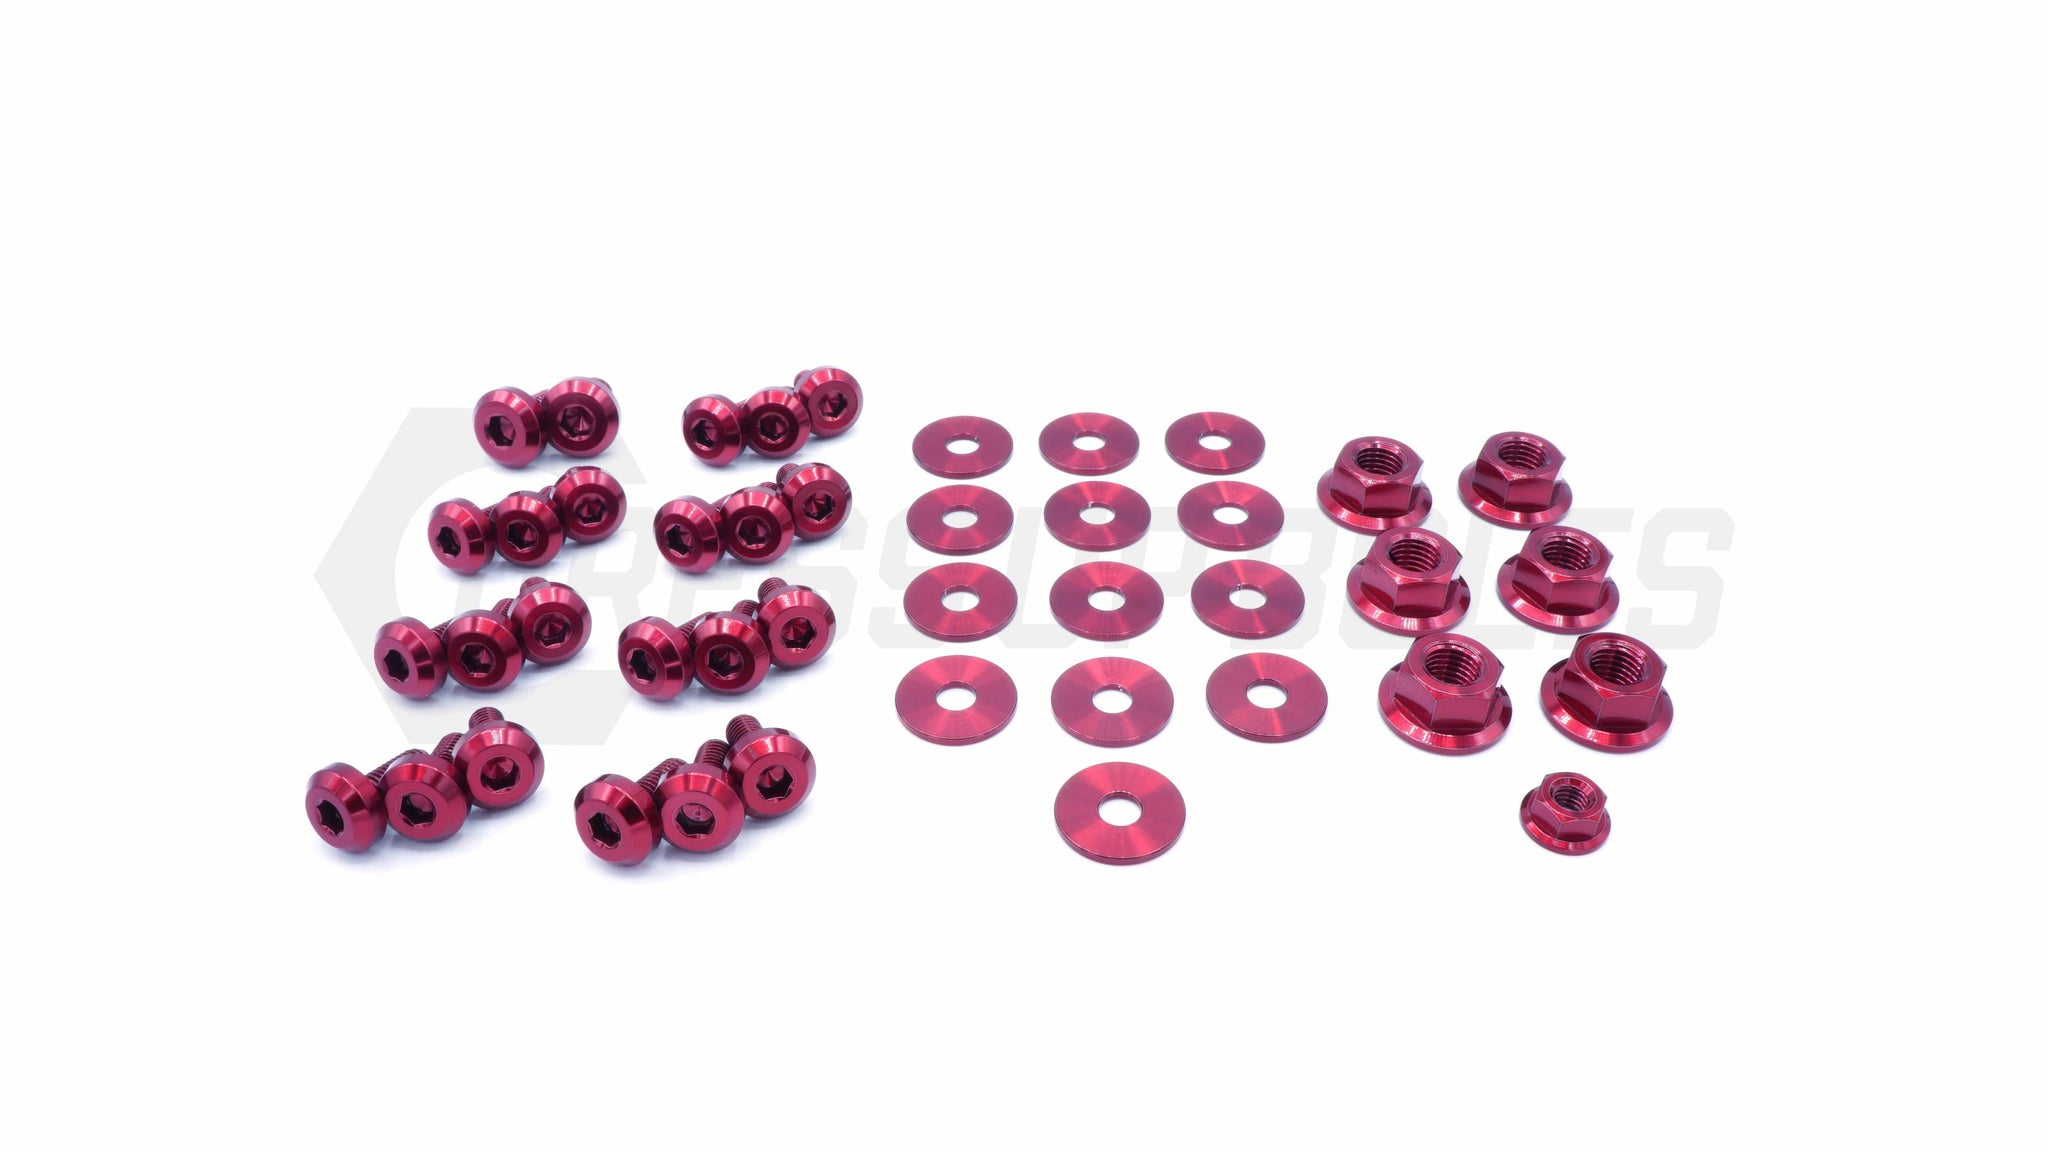 Toyota Supra (1993-2002) MKIV Titanium Dress Up Bolts Engine Bay Kit